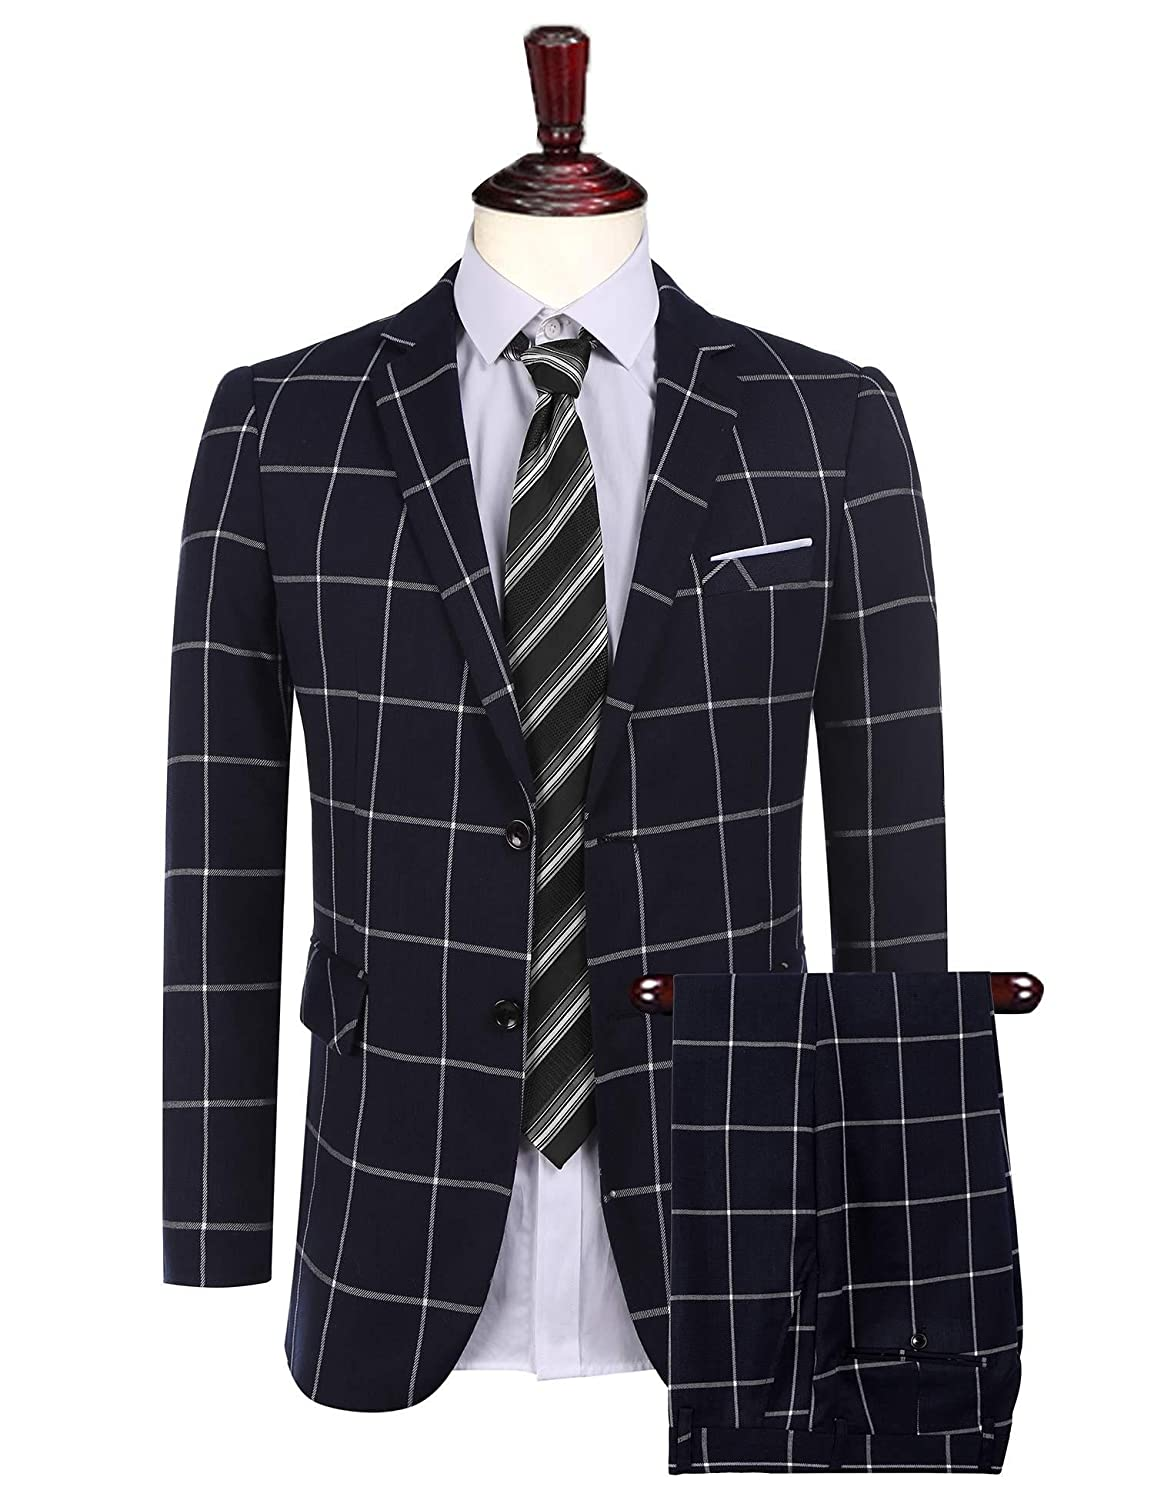 Jinidu Men's 2-Piece Fashion Plaid Suit Slim Fit Single-Breasted Blazer Jacket & Pants LY0230